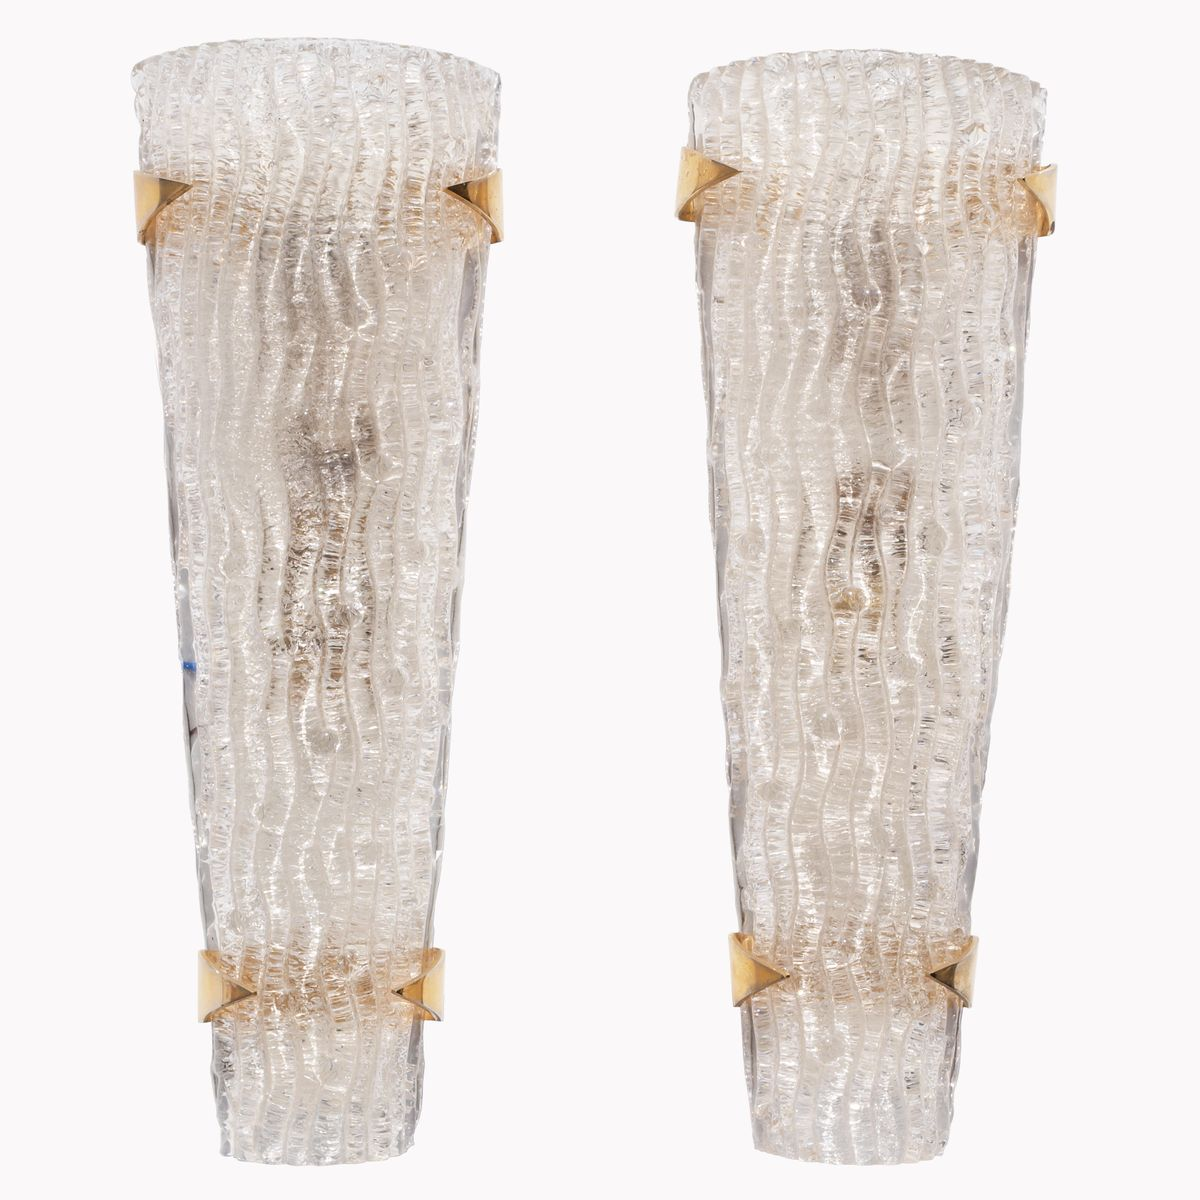 Murano Wall Lights or Sconces, 1950s, Set of 2